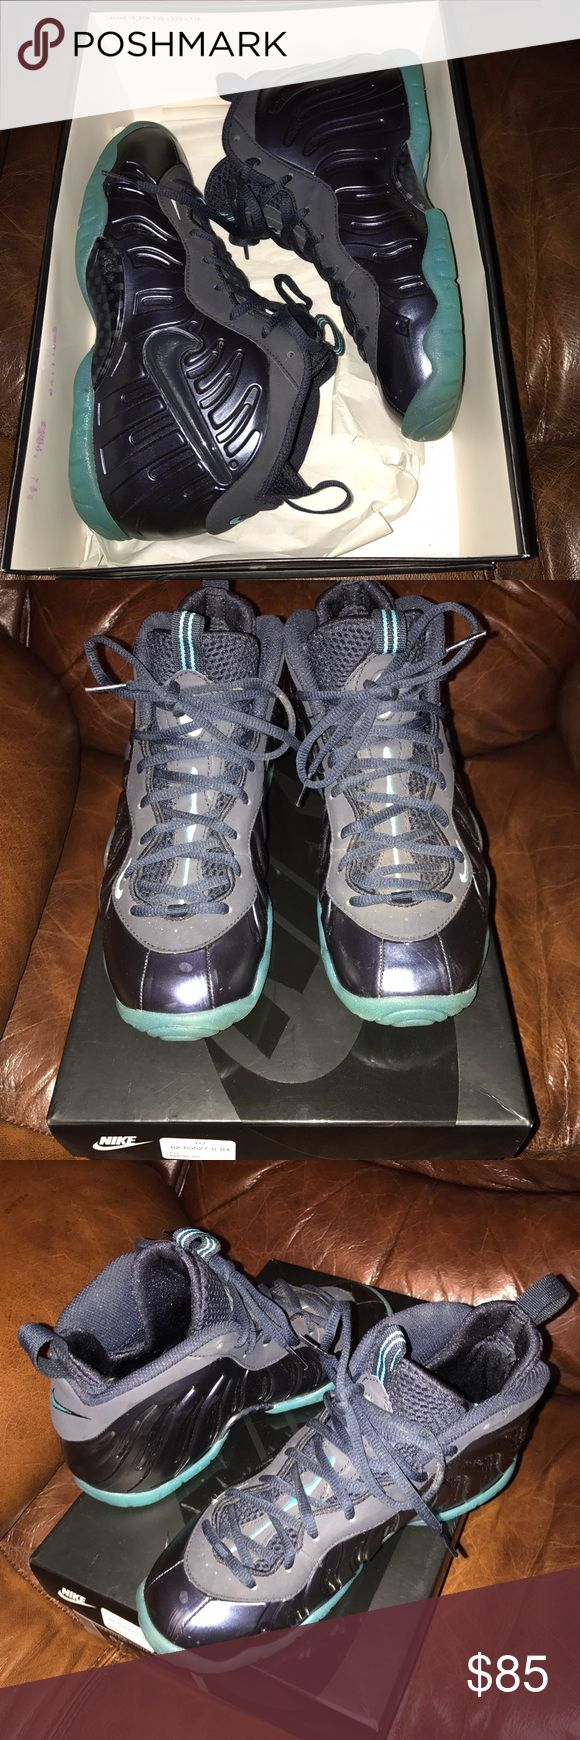 Authentic Used Nike Kids Foam Posites used several times good condition few scratches but still good in box Nike Shoes Sneakers